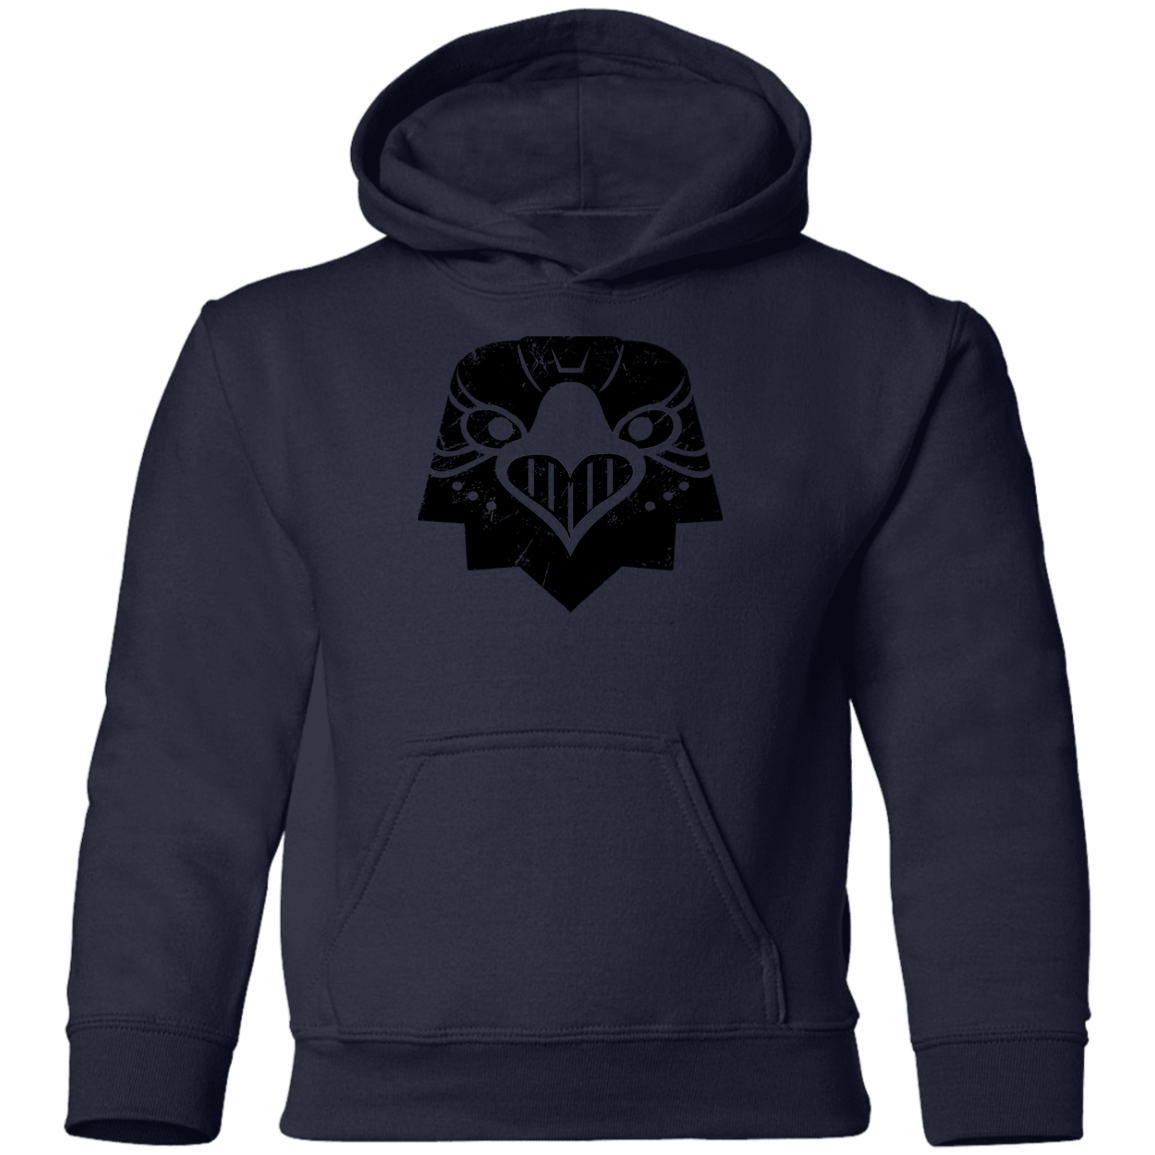 Black Distressed Emblem Hoodies for Kids (Eagle/Eagle-Eye)